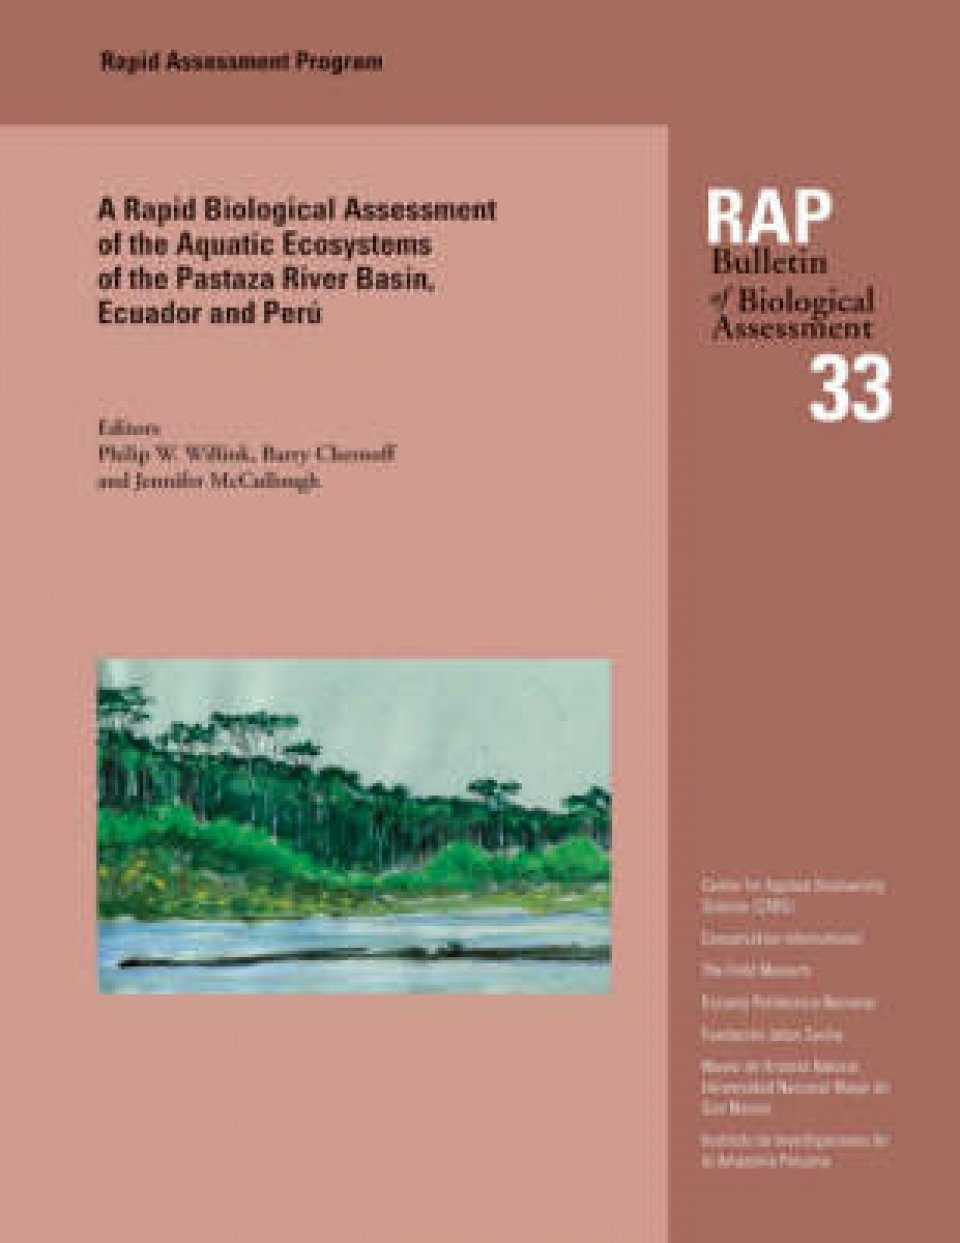 A Rapid Biological Assessment of the Aquatic Ecosystems of the Pastaza River Basin, Ecuador and Peru